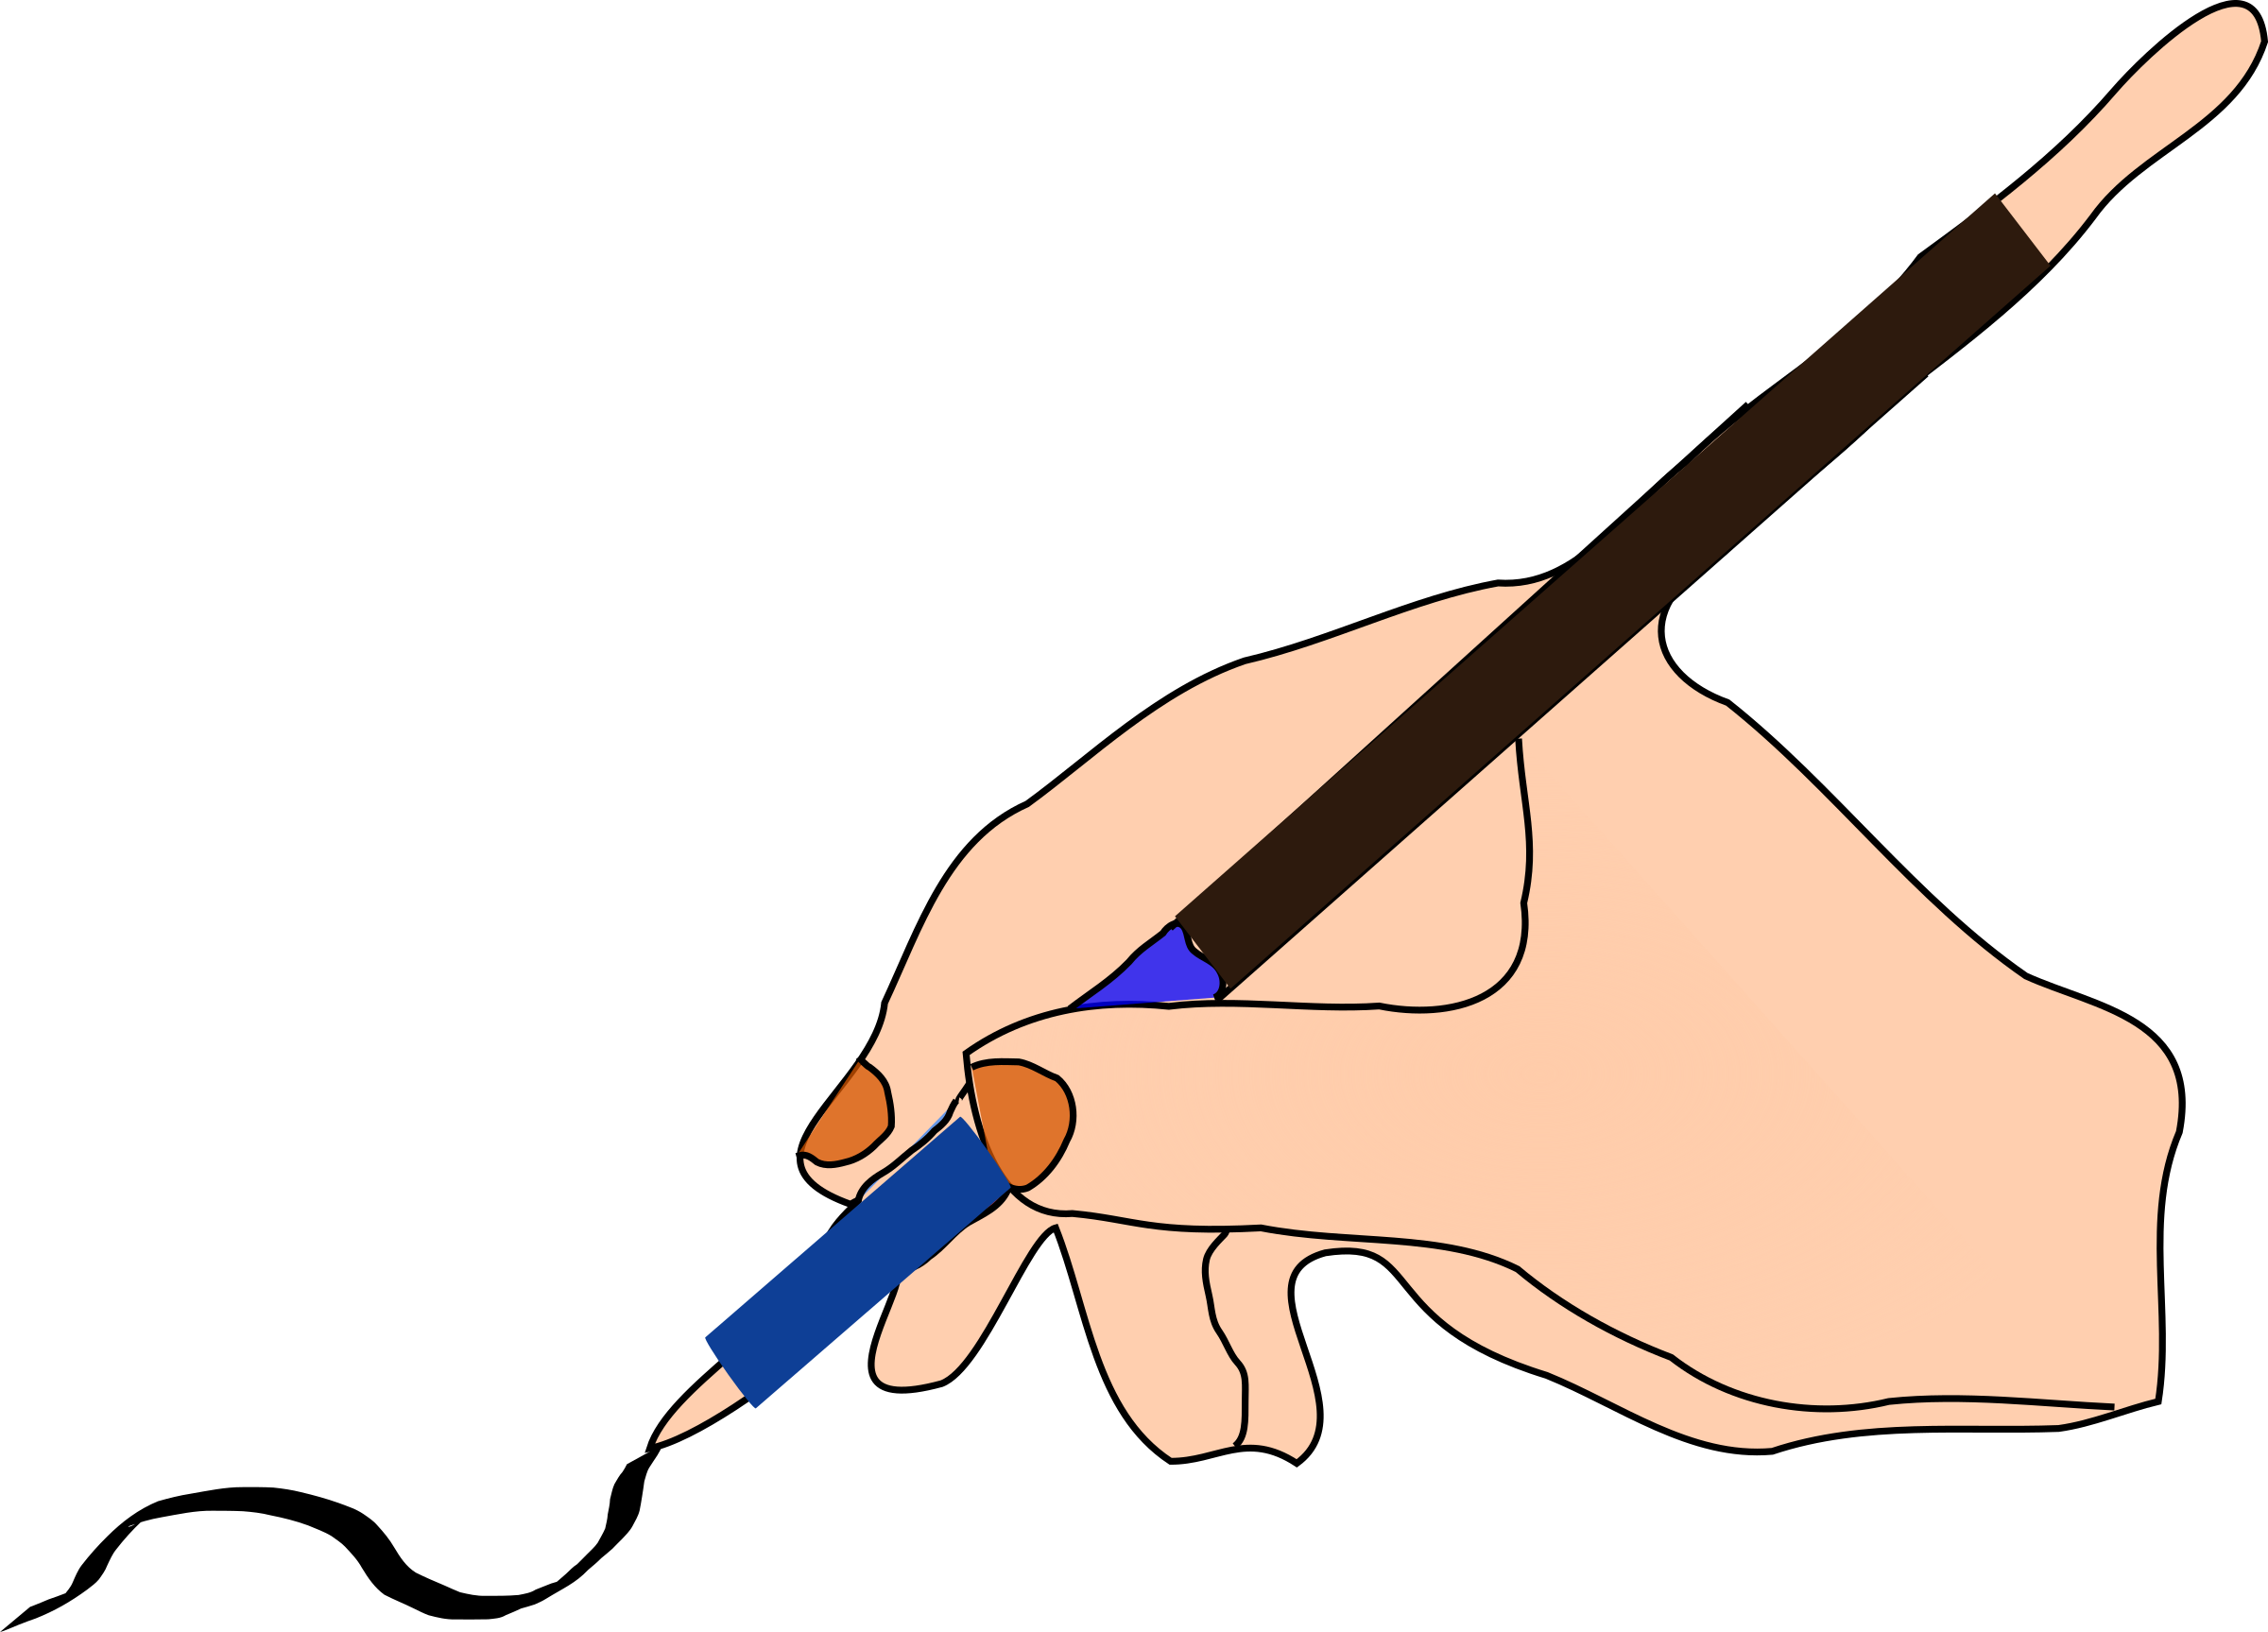 Vector pens animated. Clipart write big image